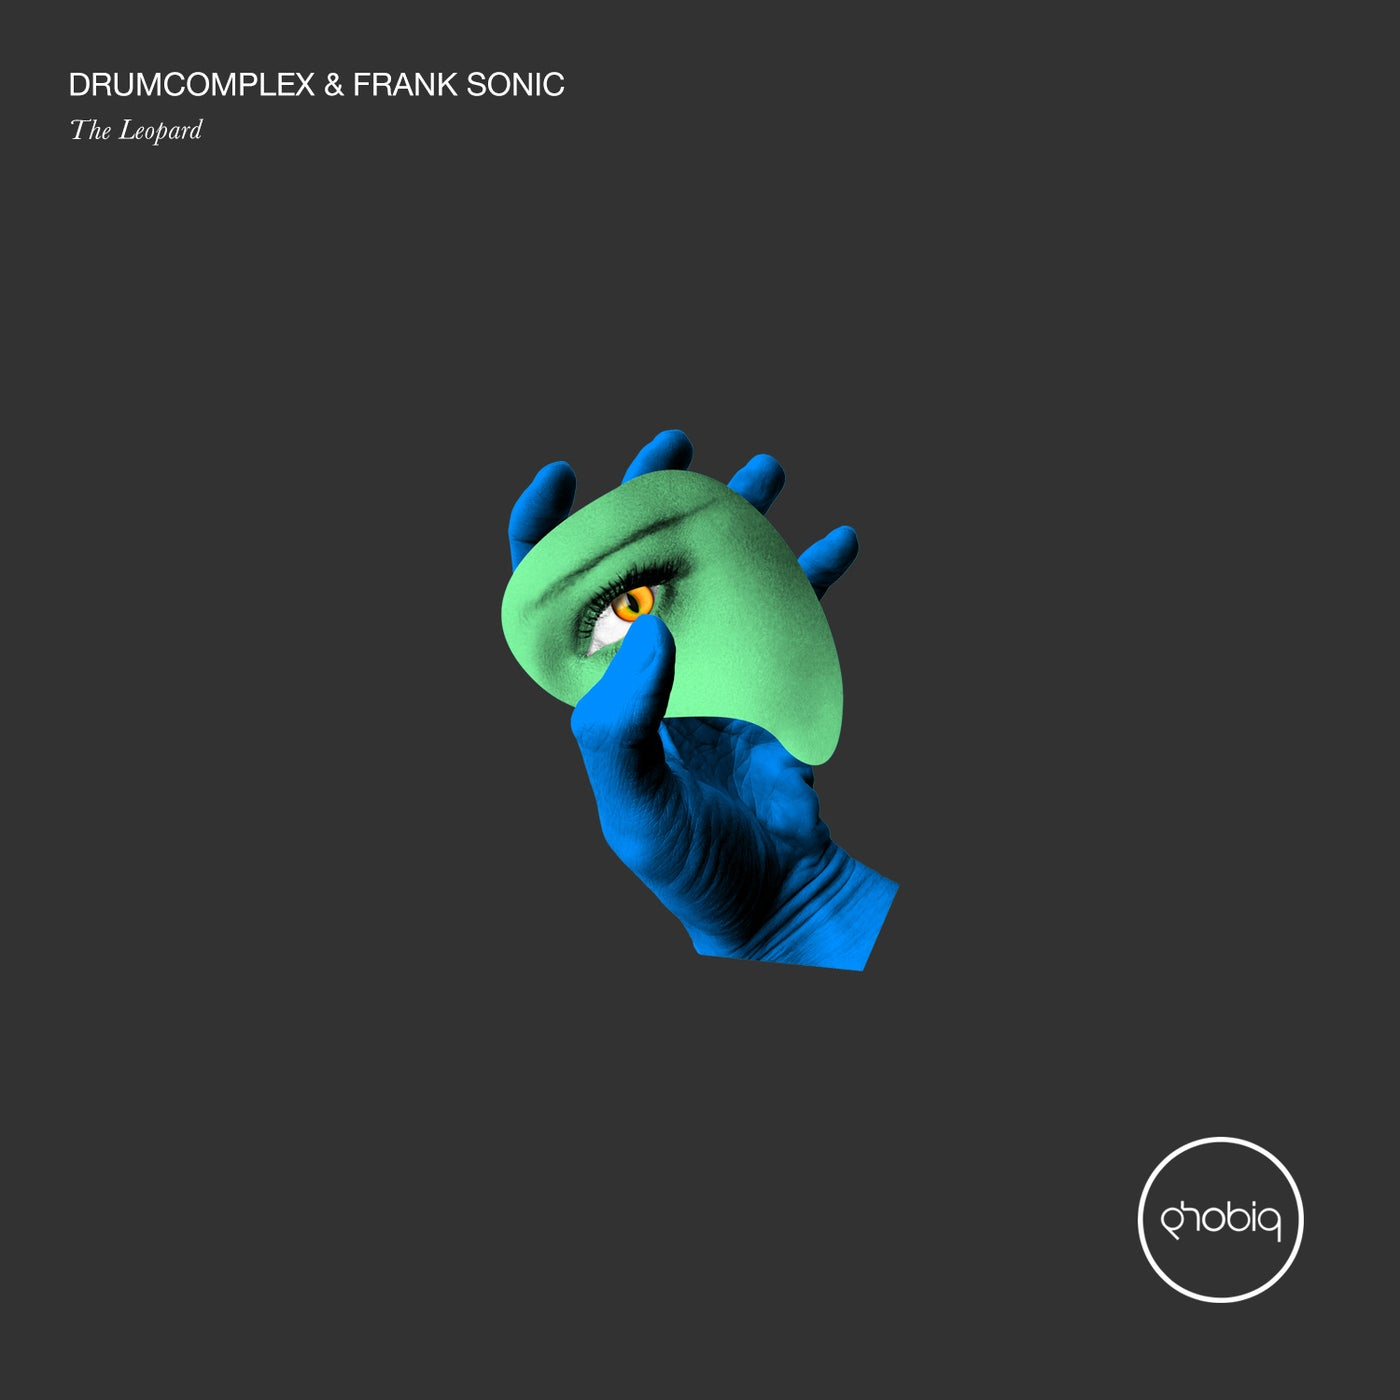 Drumcomplex, Frank Sonic - The Leopard (2021)